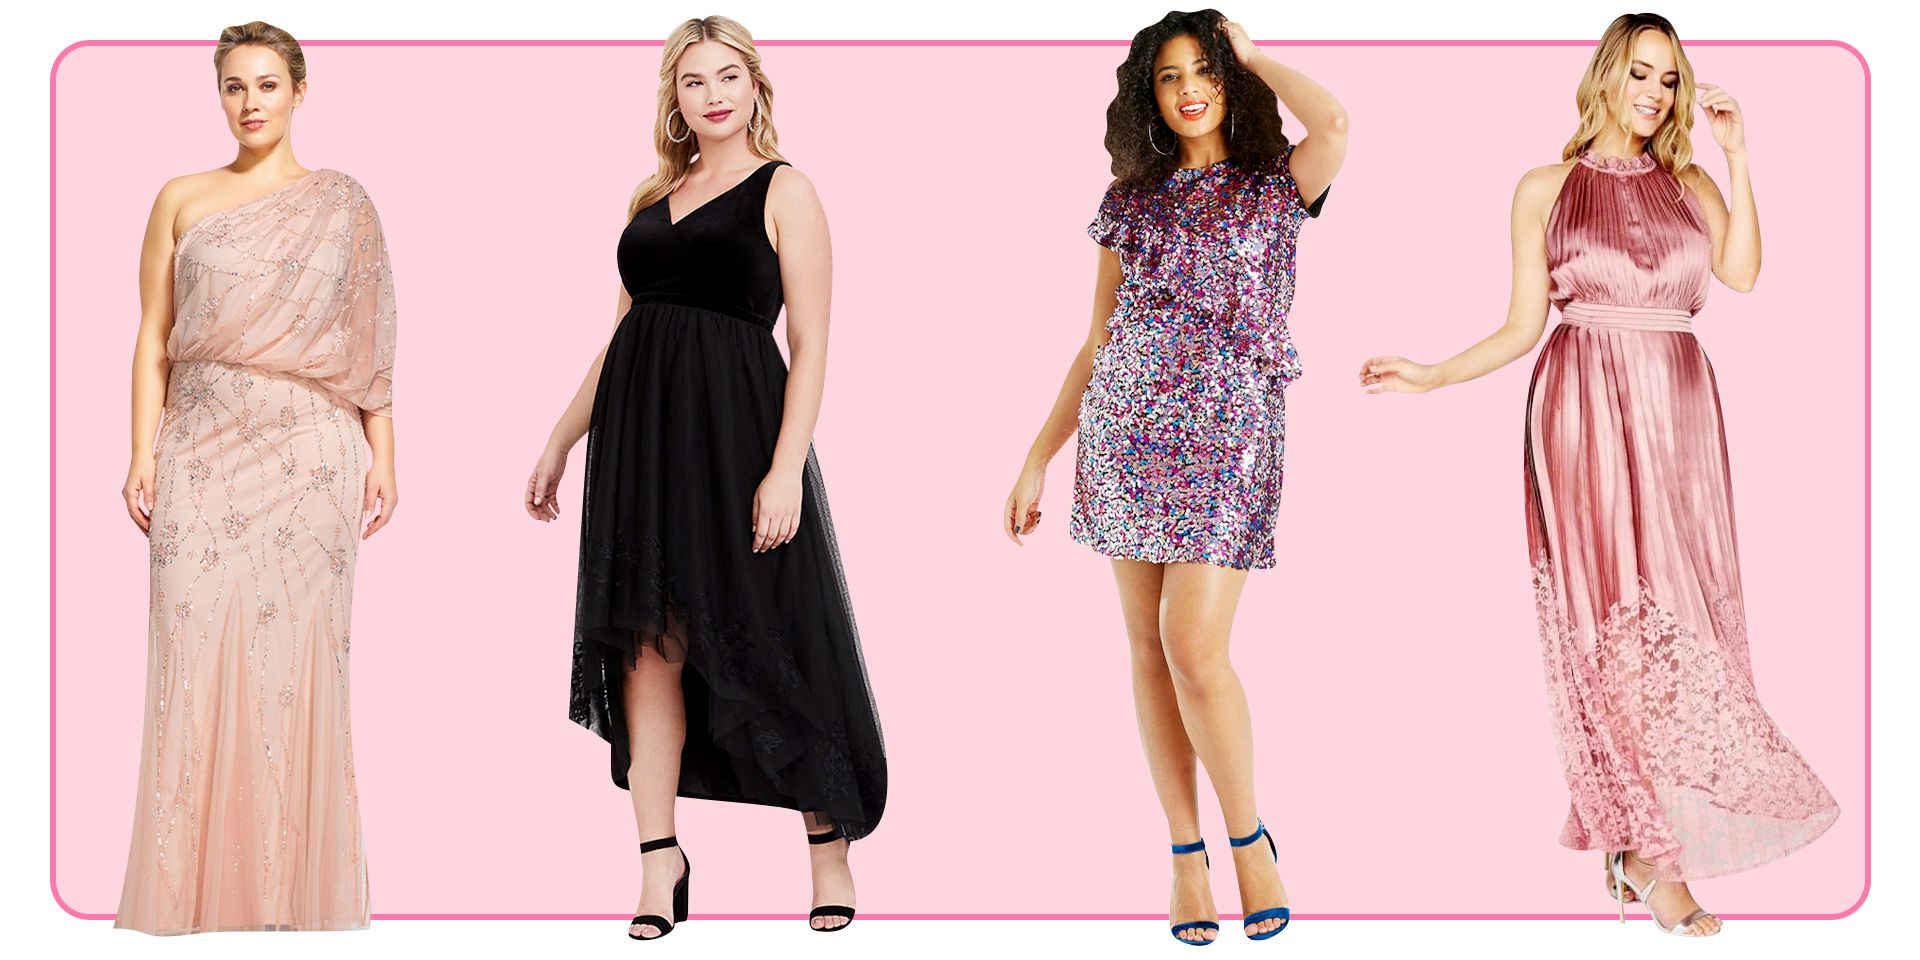 12 Gorgeous Plus Size Prom Dresses Where To Buy Plus Size Prom